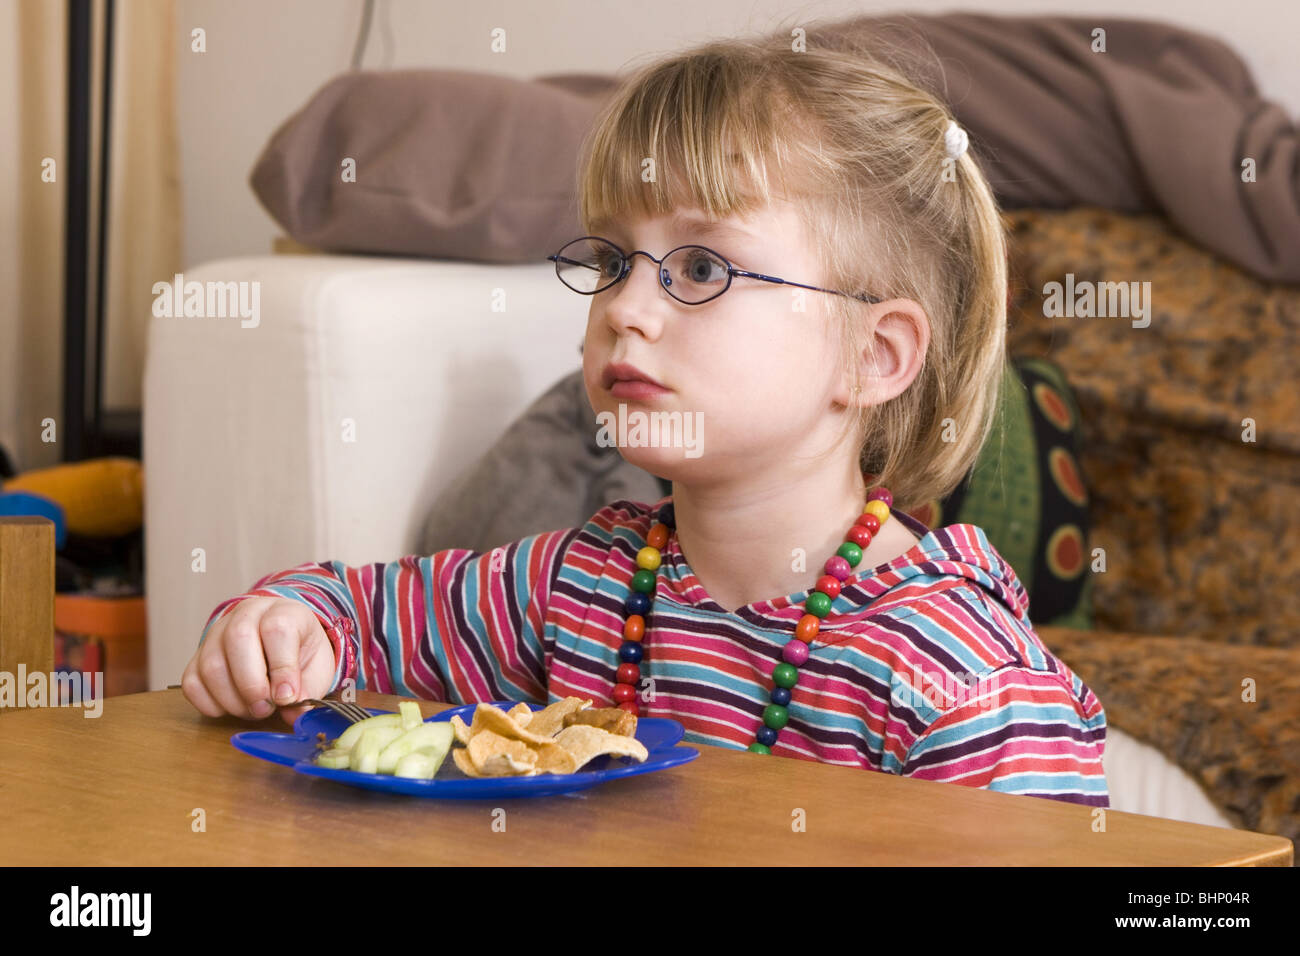 Young girl having family dinner alone while watching television and staring at the tv and eating her meal., shootcvs517003 - Stock Image